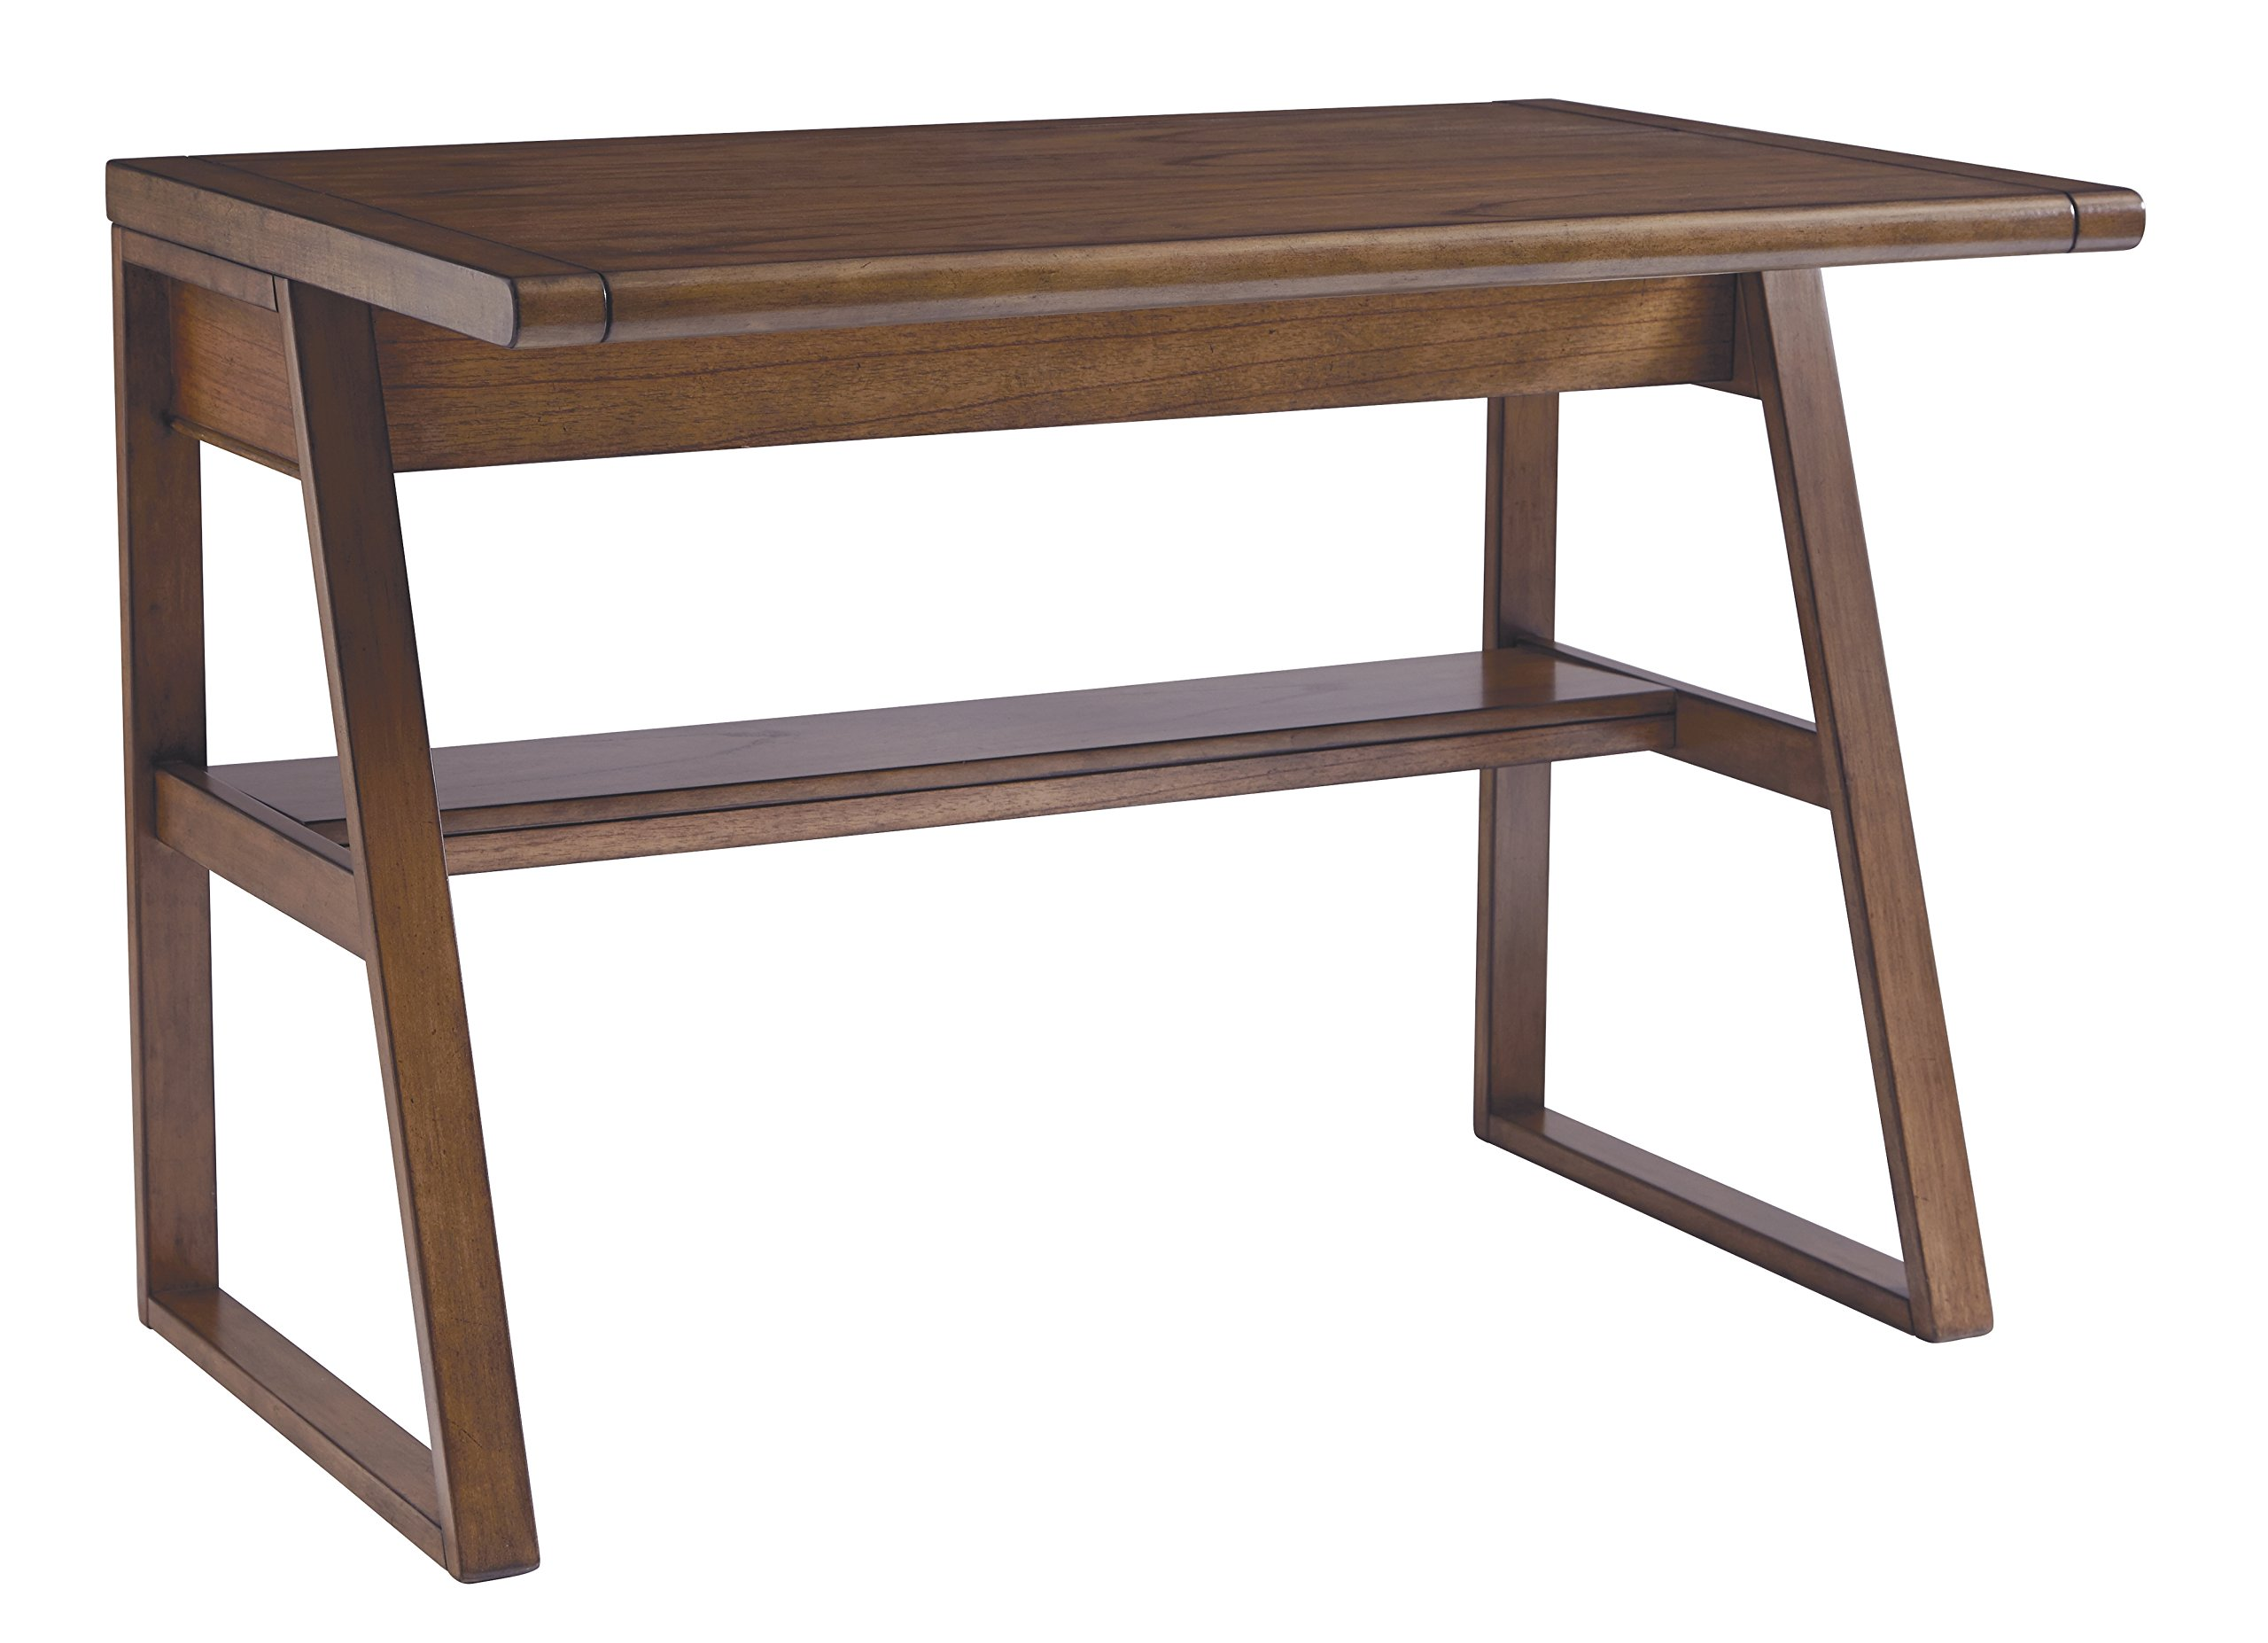 Ashley Furniture Signature Design - Vintage Casual Home Office Desk - Dual Electrical Outlets & Charging Stations - Medium Brown